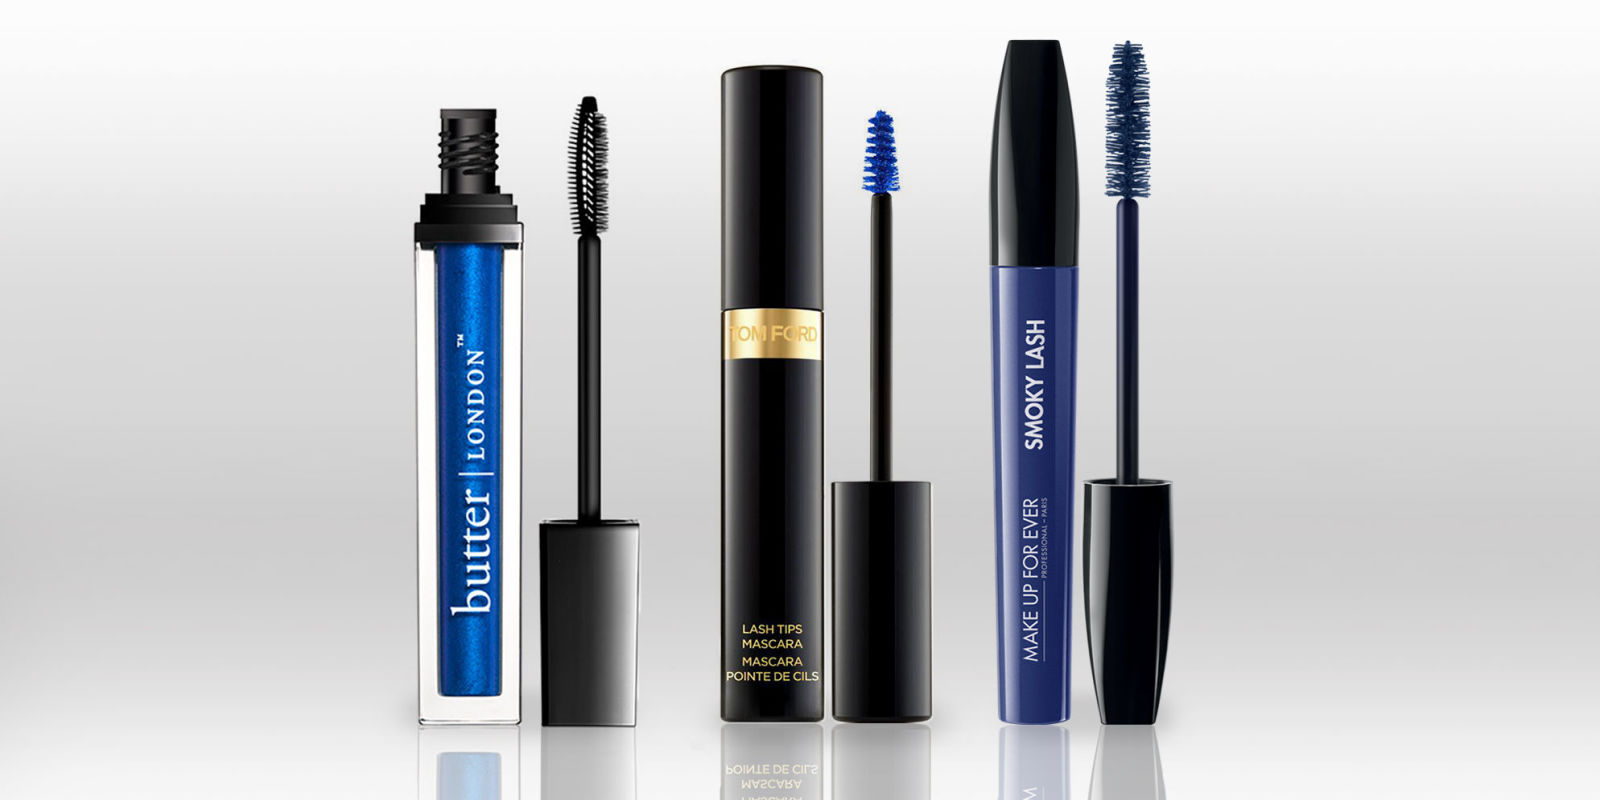 9 best blue mascara shades of 2018 for every eye color. Black Bedroom Furniture Sets. Home Design Ideas